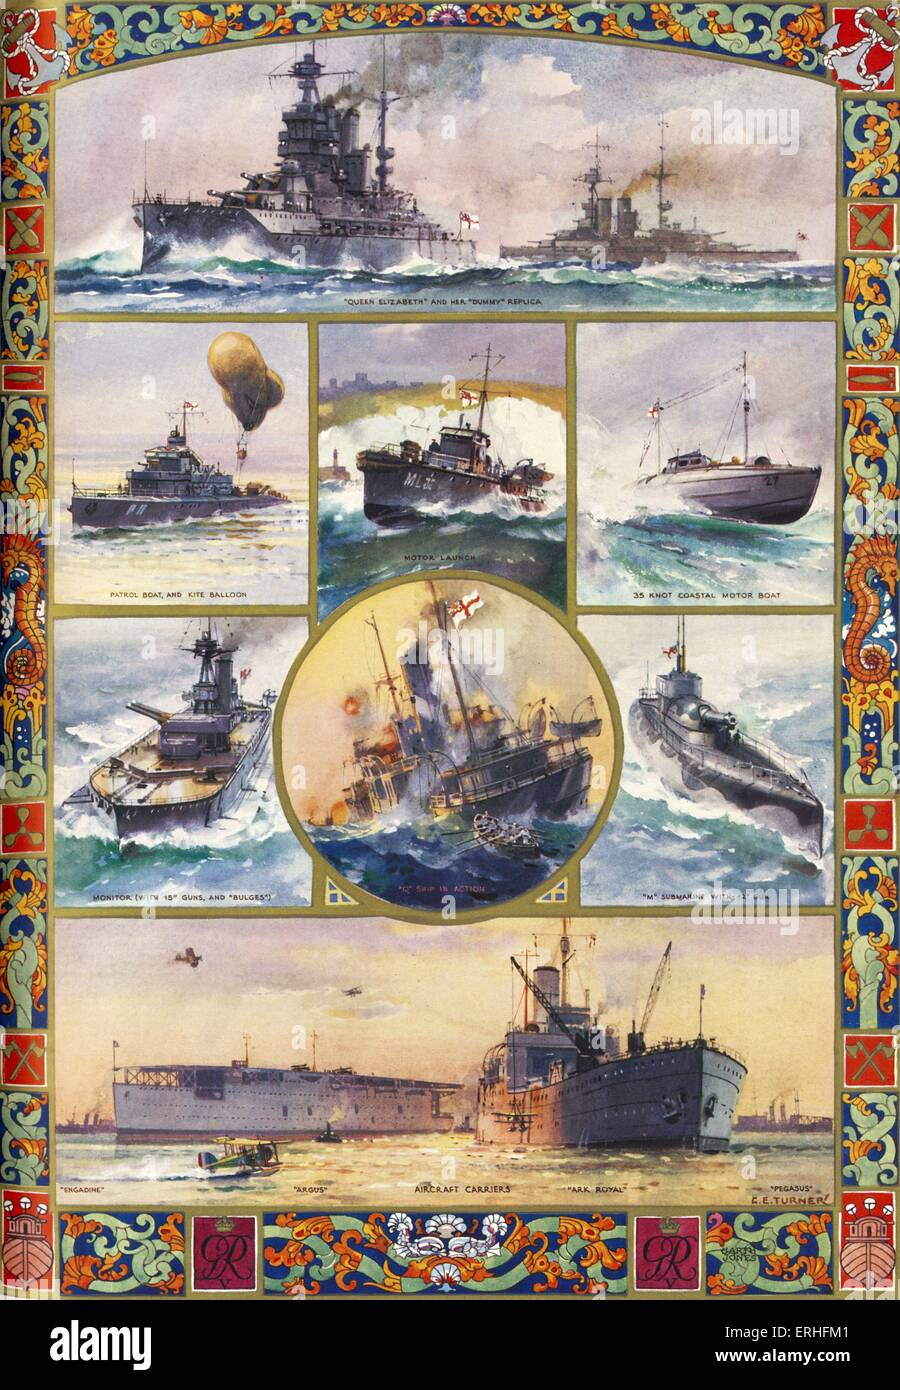 Battleships in British navy at the start of World War I - from painting by  C.E.Turner. Top image: 'Queen Elizabeth' - Stock Image